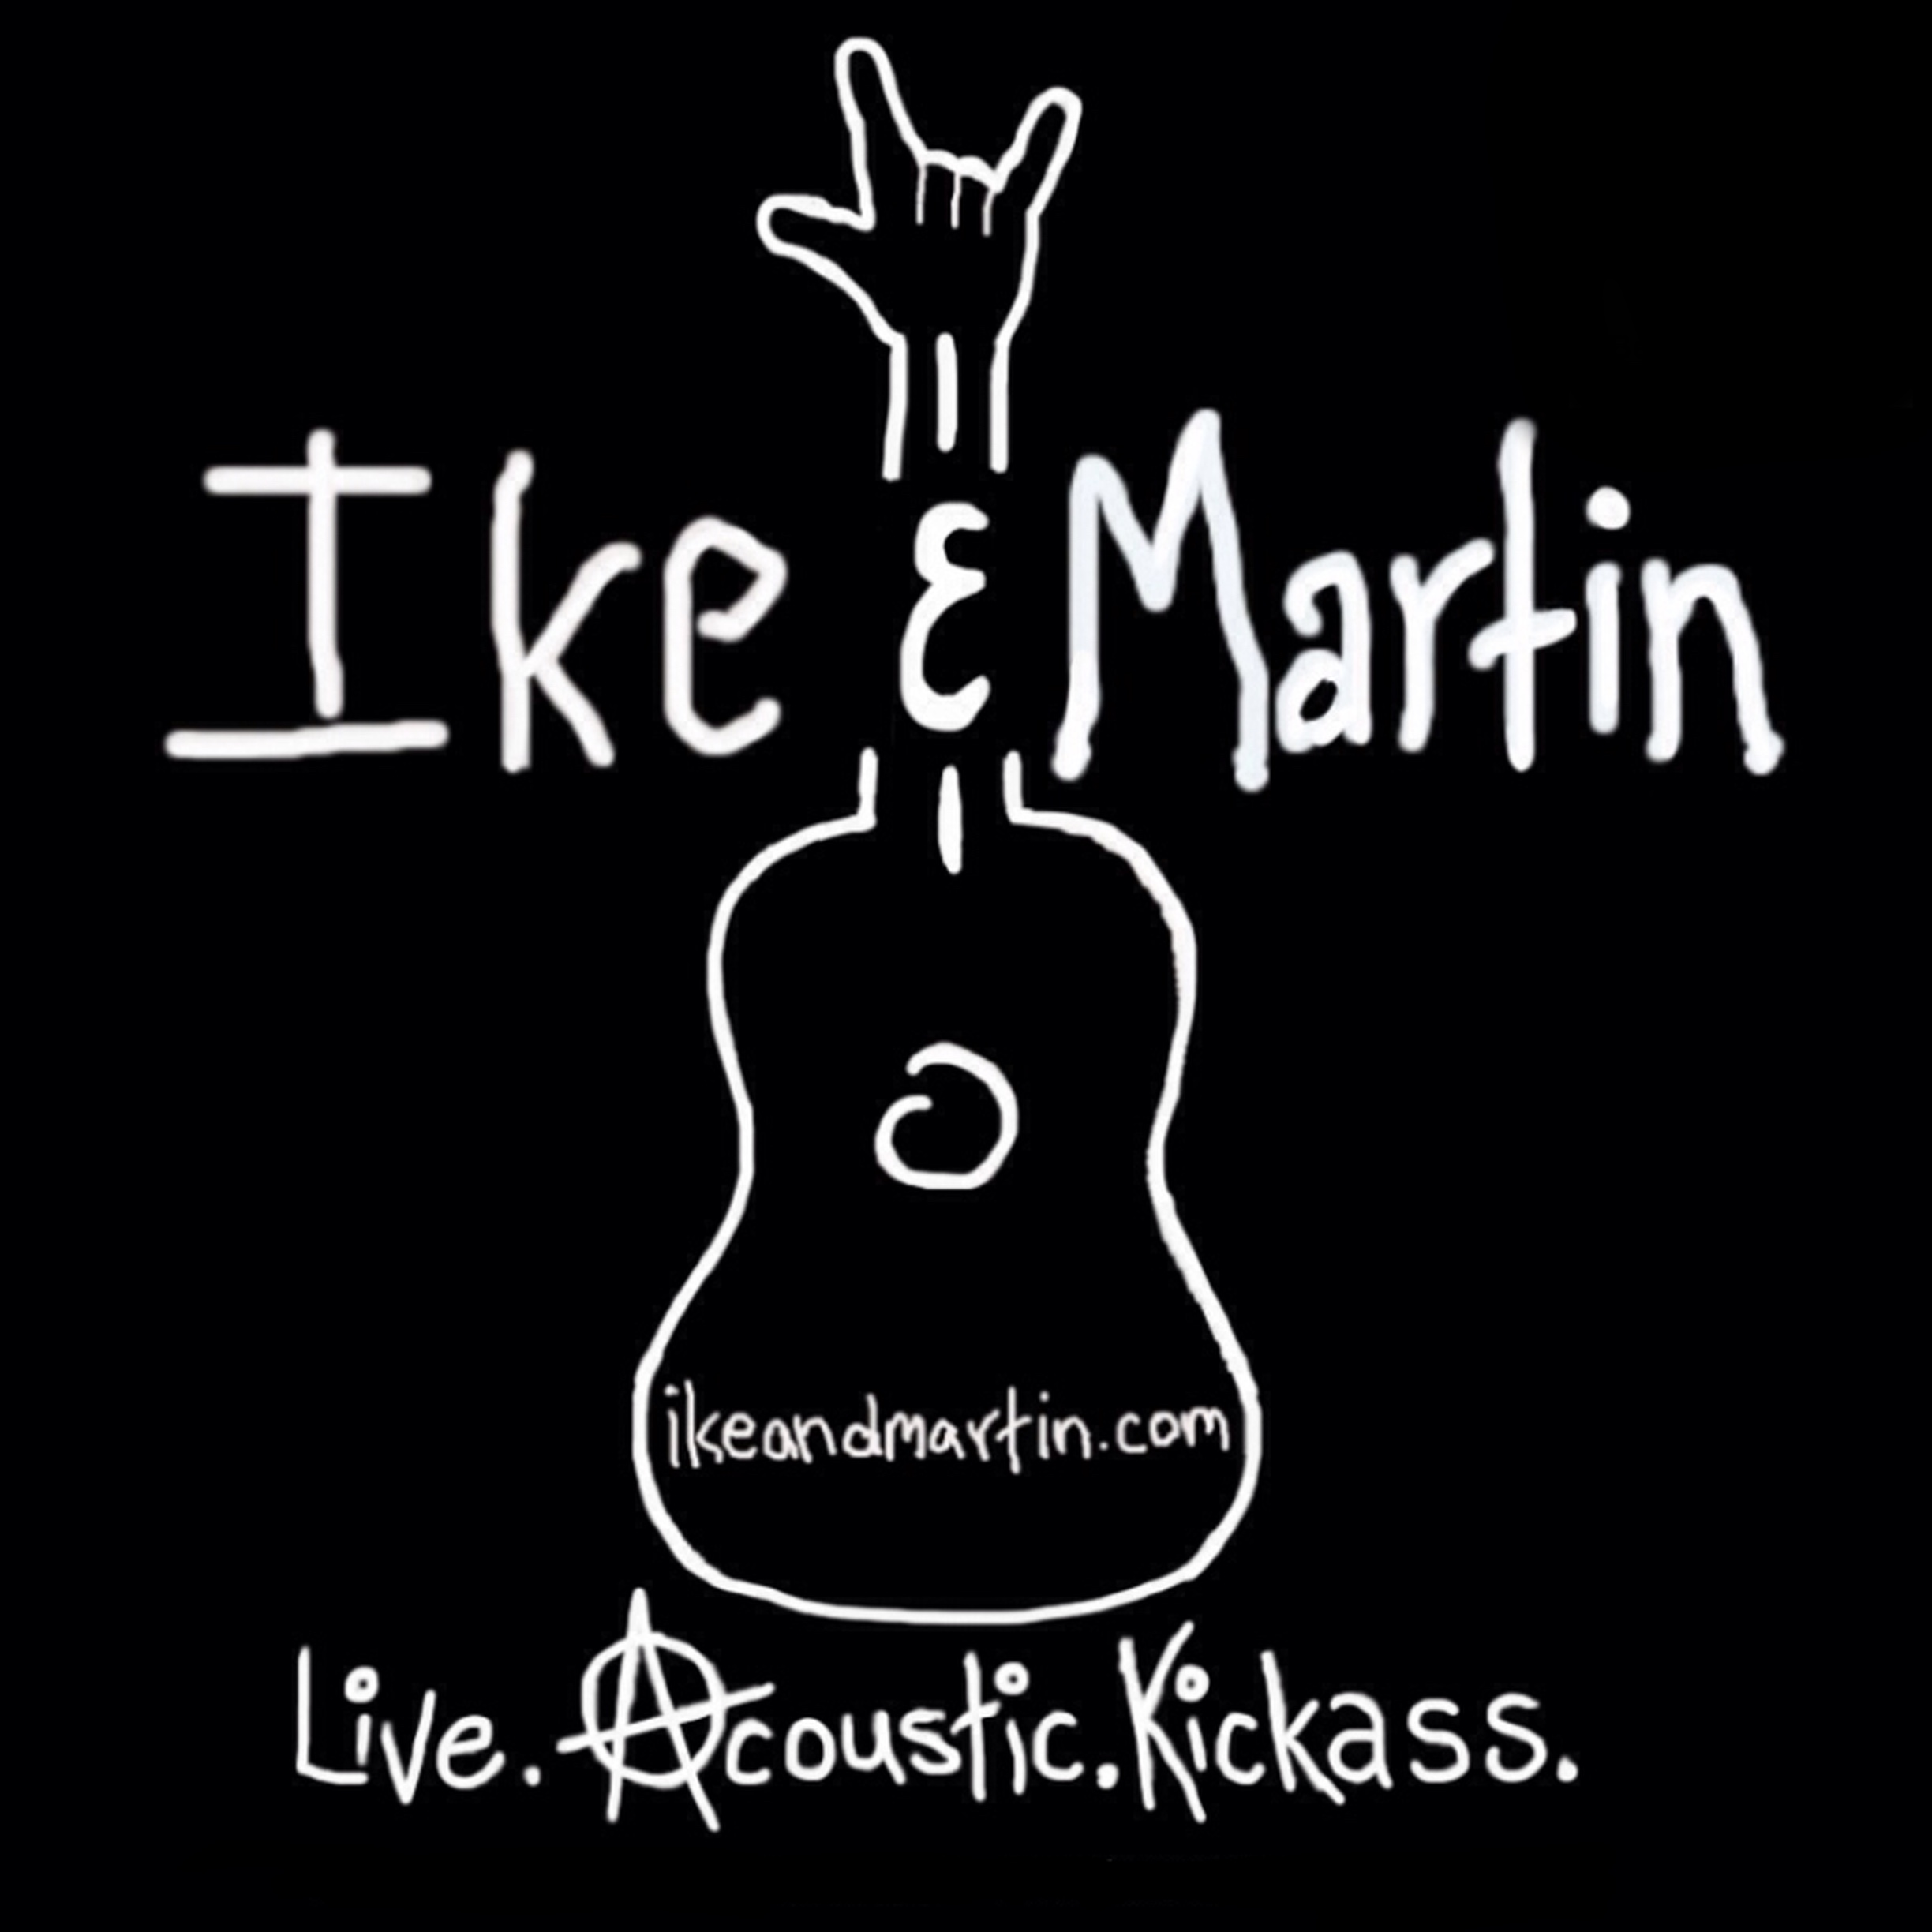 ike and martin logo.jpg